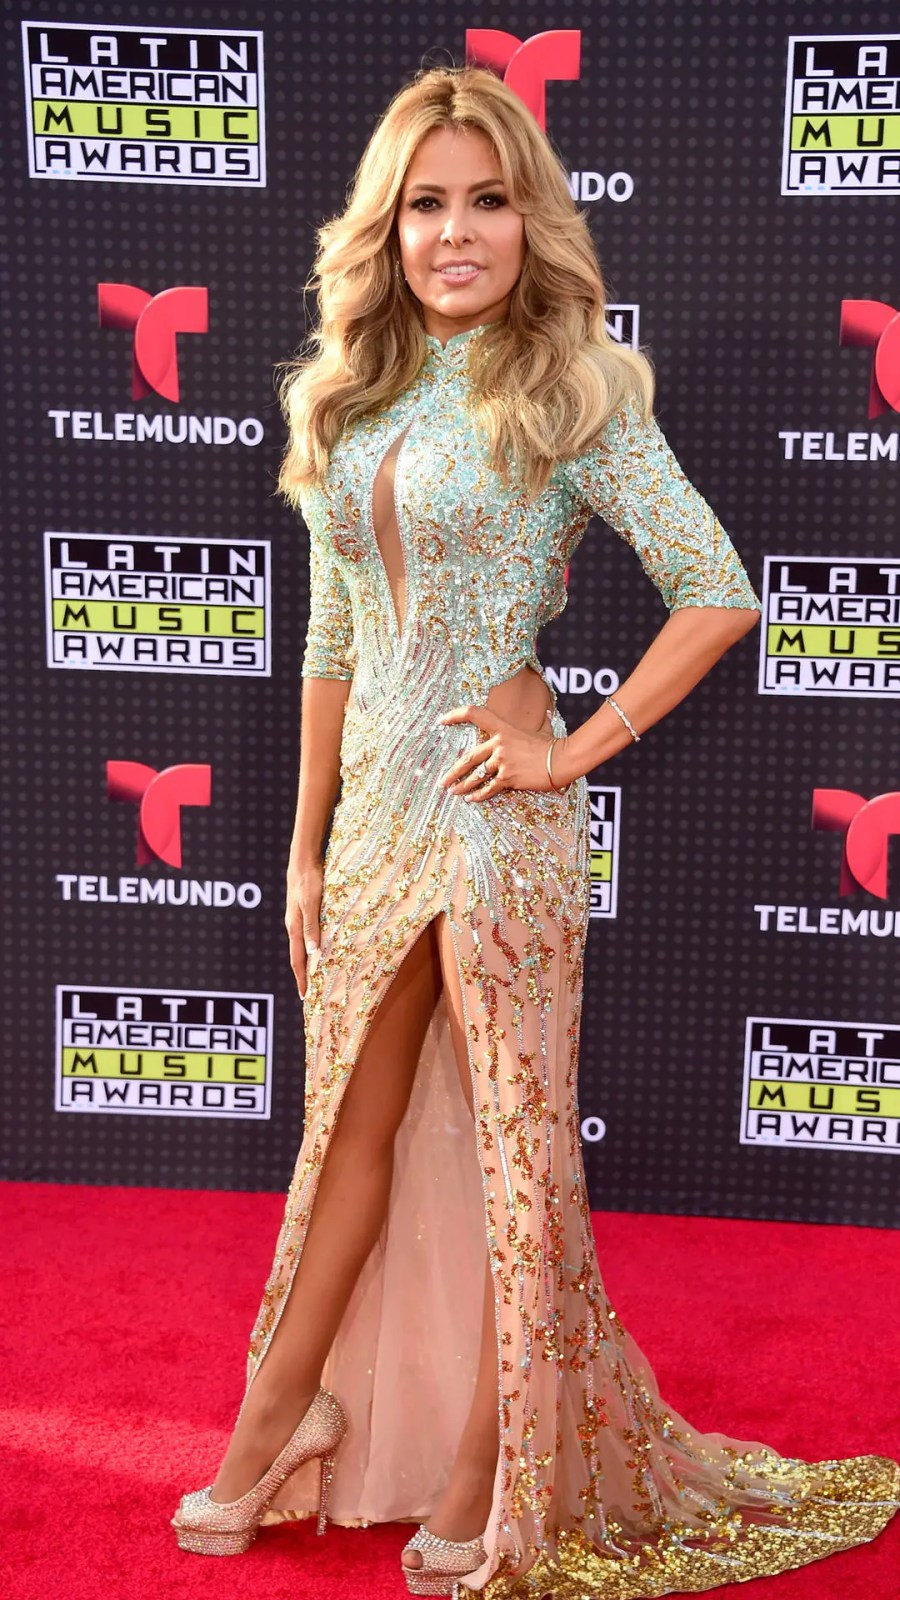 HOLLYWOOD, CA - OCTOBER 08: Singer Gloria Trevi attends Telemundo's Latin American Music Awards at the Dolby Theatre on October 8, 2015 in Hollywood, California. (Photo by Frazer Harrison/Getty Images)